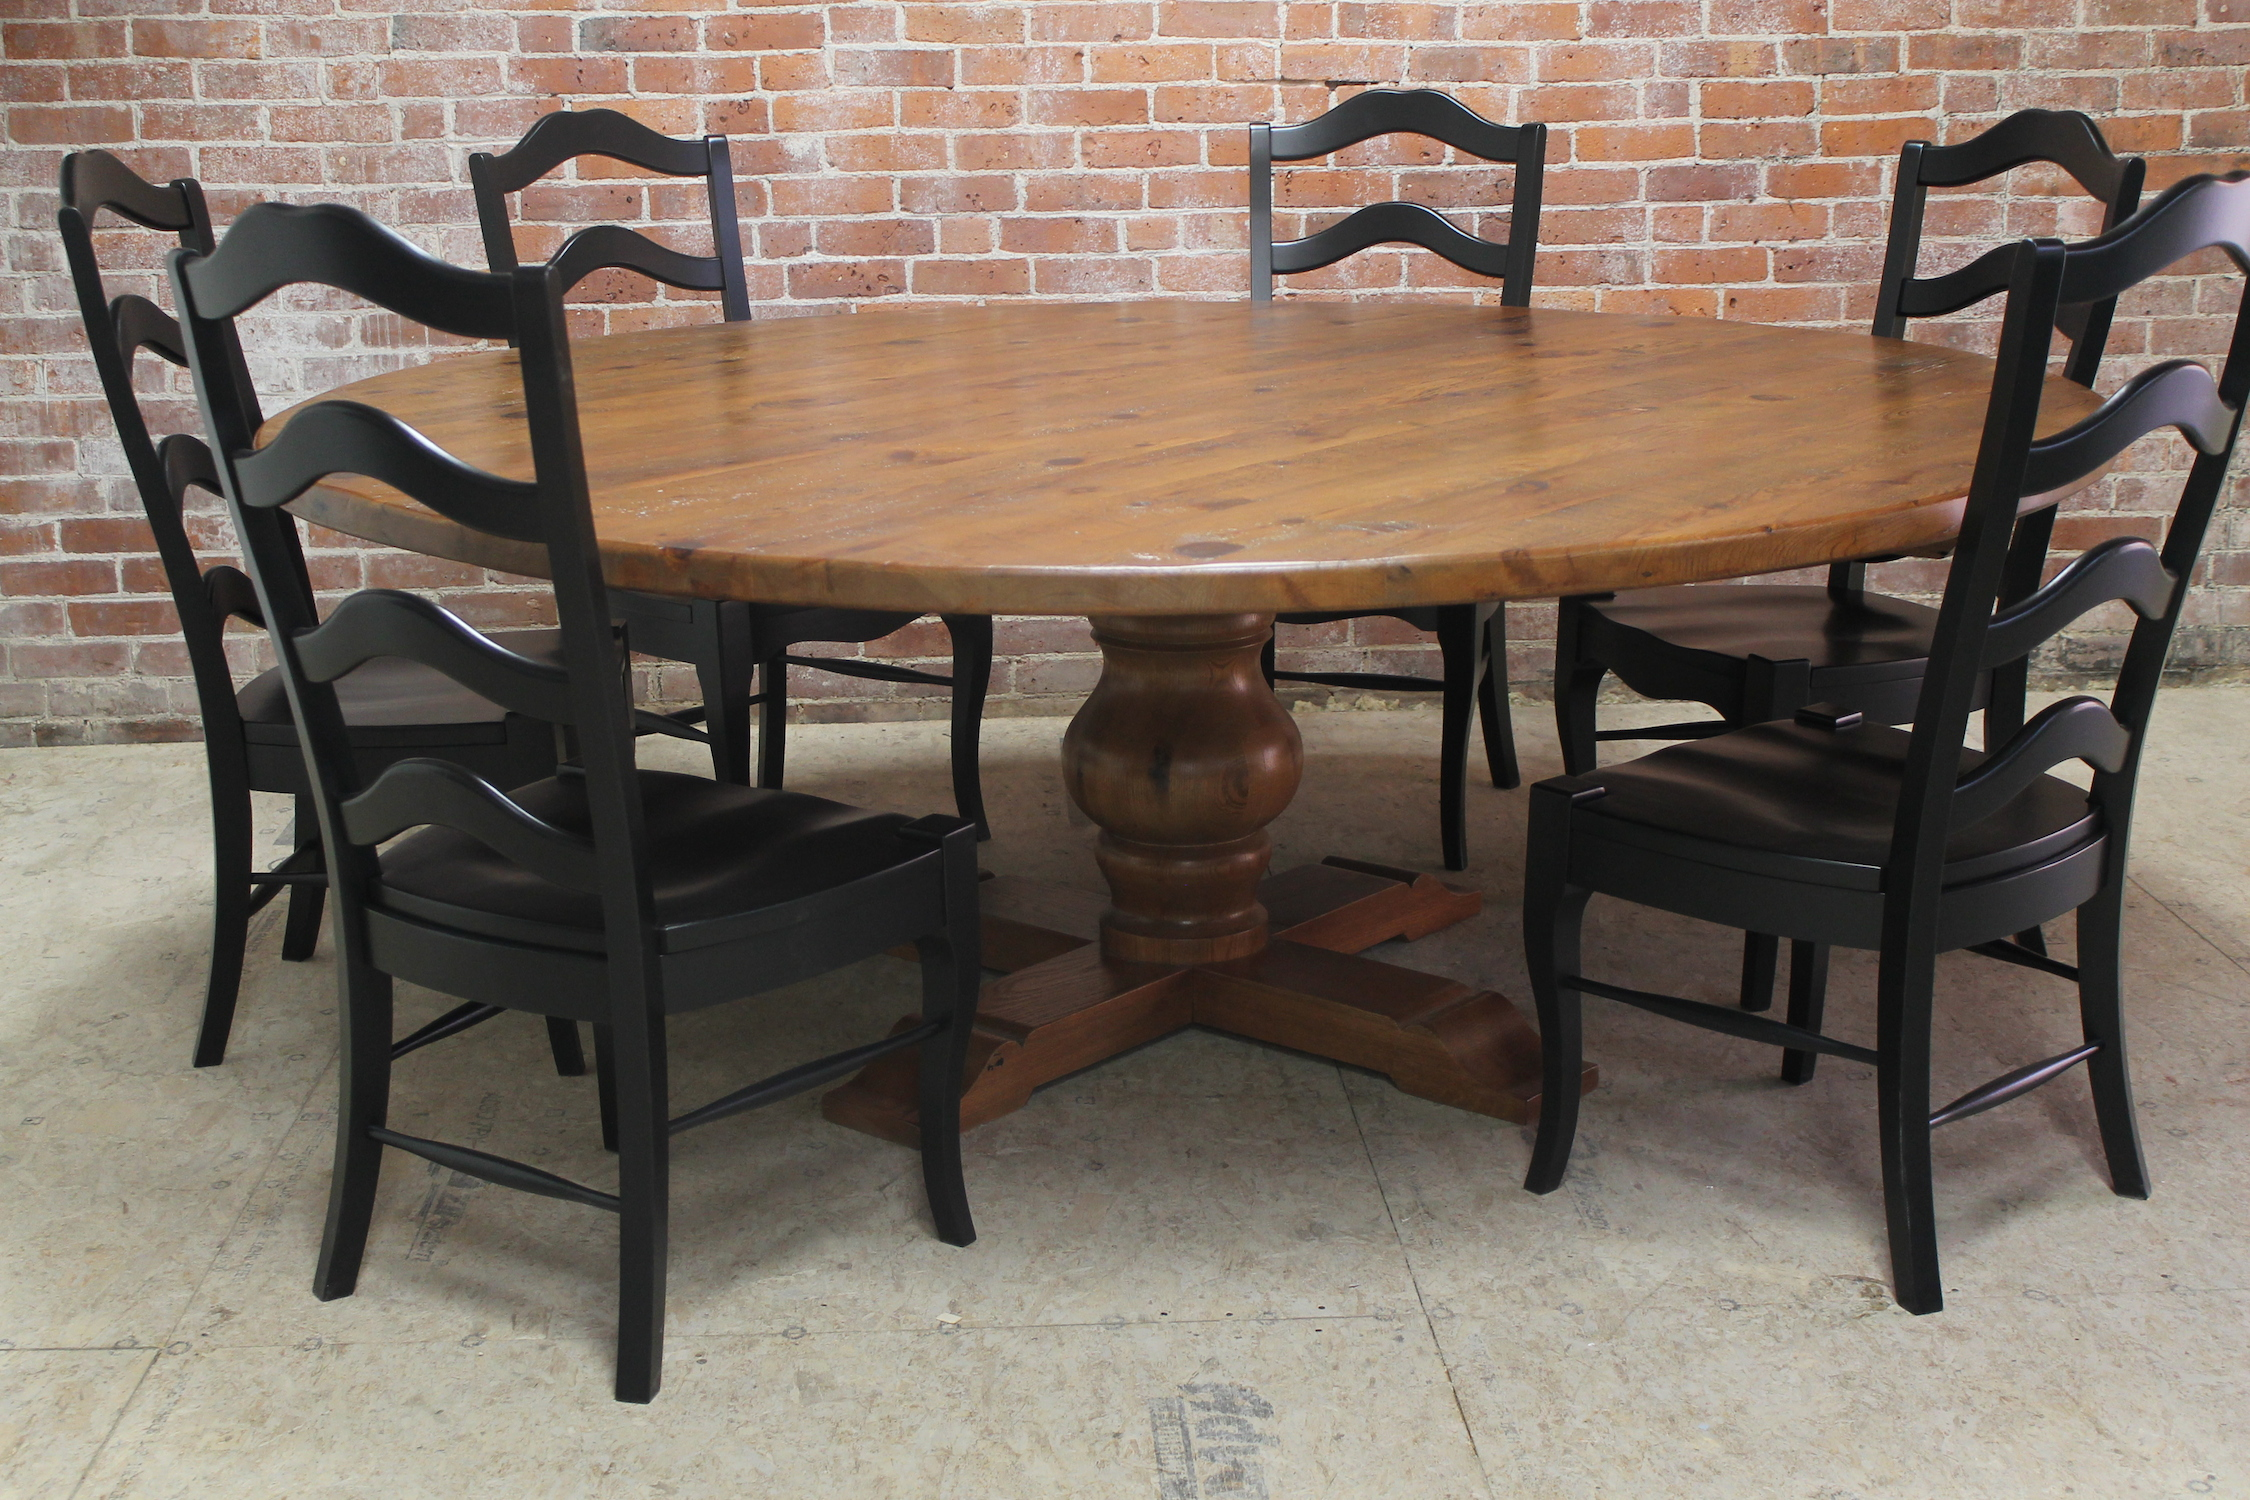 http://homesfeed.com/wp-content/uploads/2015/09/simple-natural-polished-wooden-round-dining-room-table-for-6-set-black-polished-cahirs-natural-brick-walls-natural-color-tile-floor.jpg